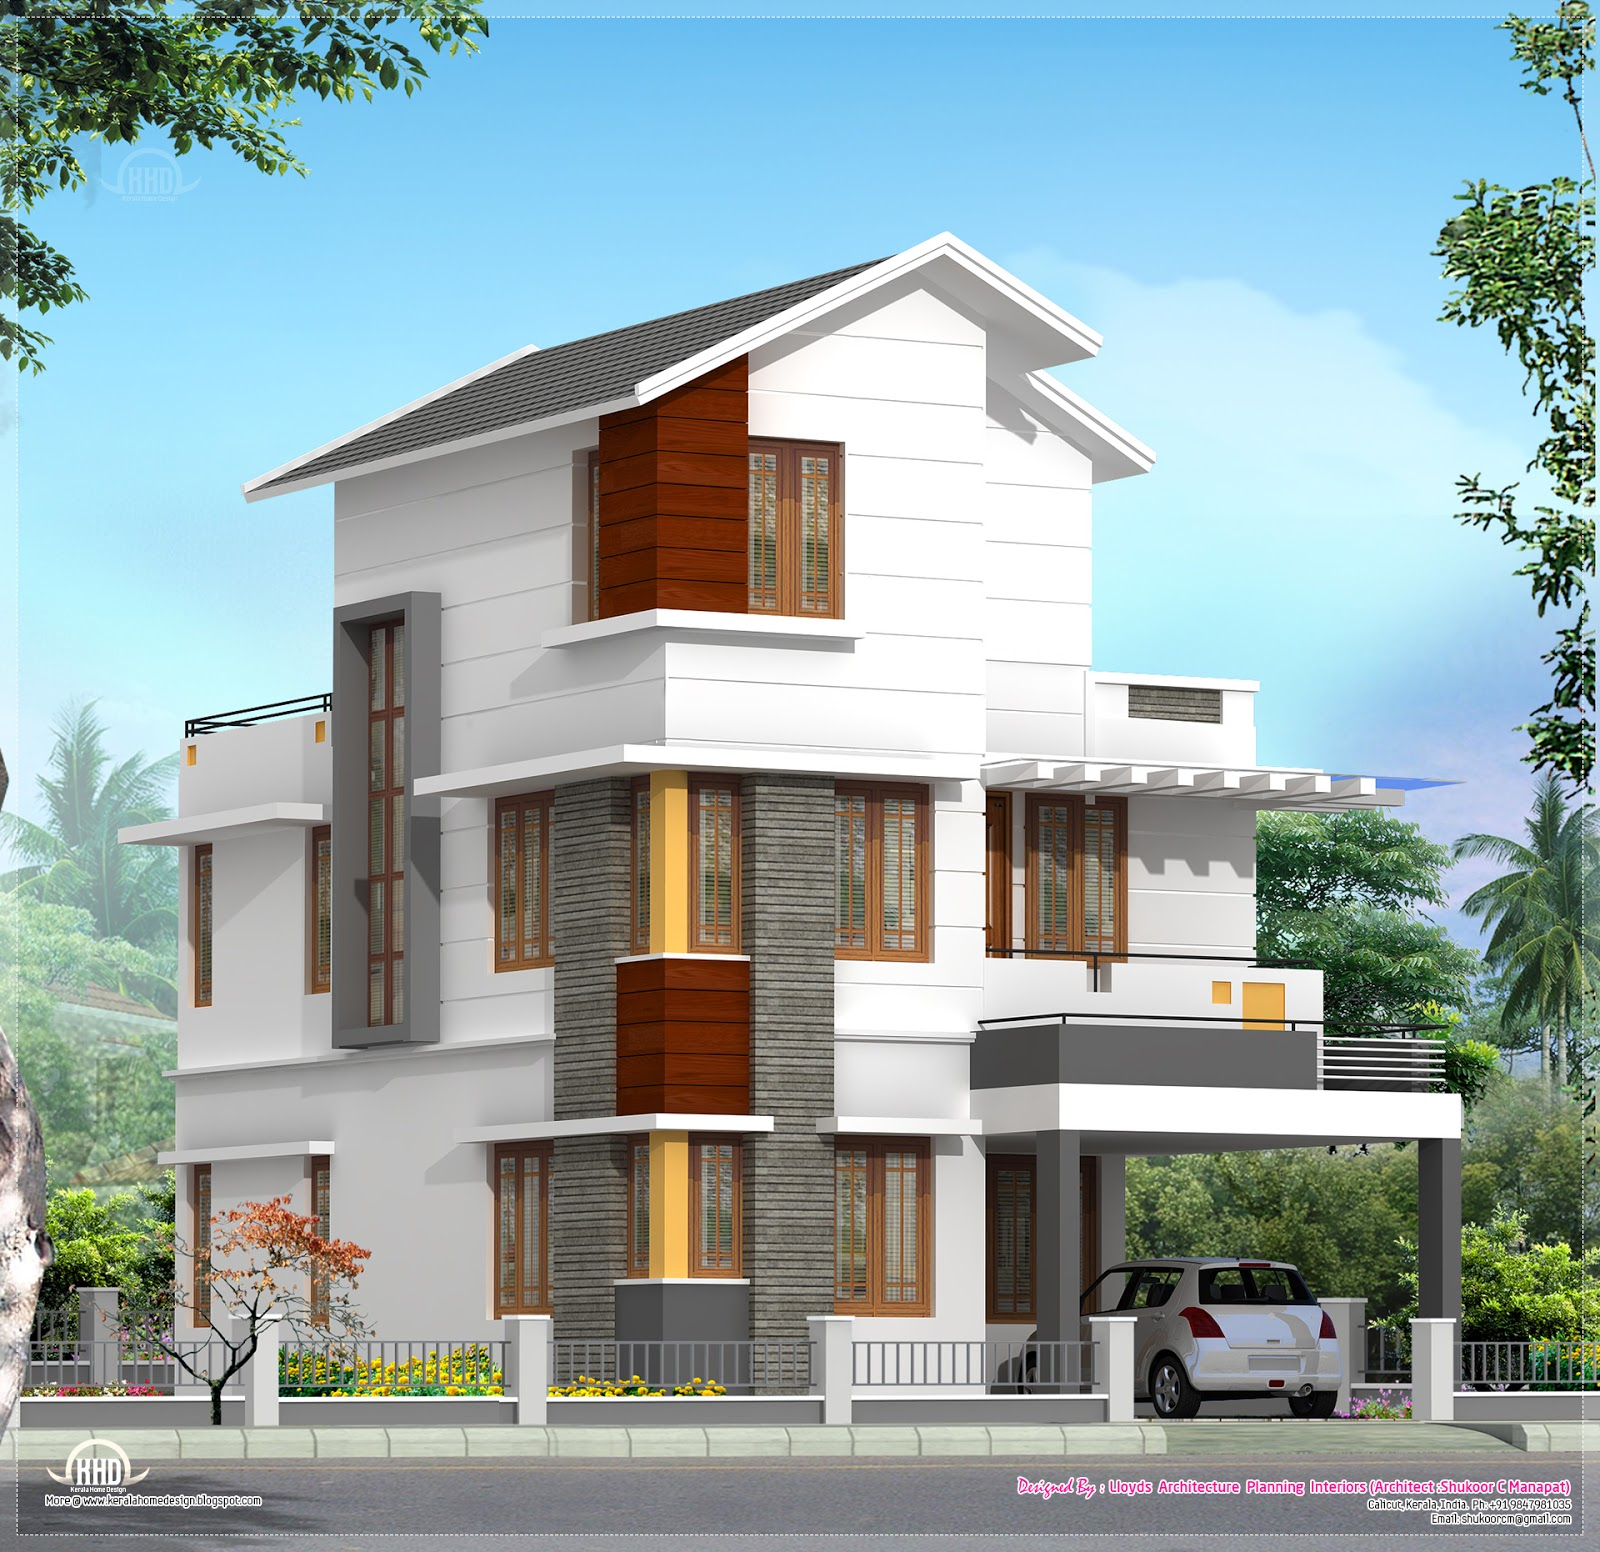 Three Floor House 4 Bedroom House Plan In Less That 3 Cents Home Kerala Plans